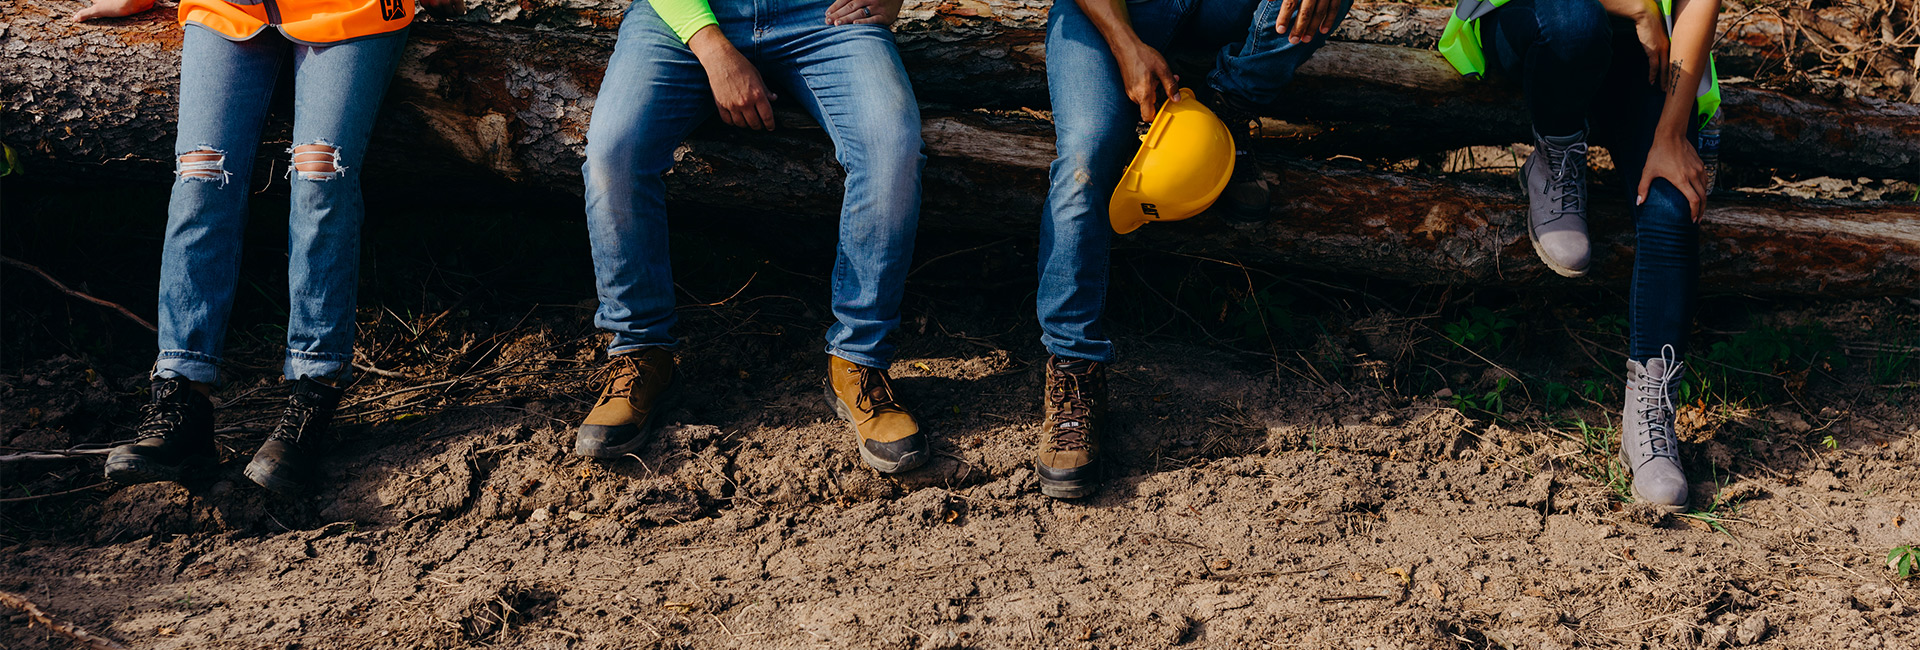 Group of workers on break all wearing CAT workboots.